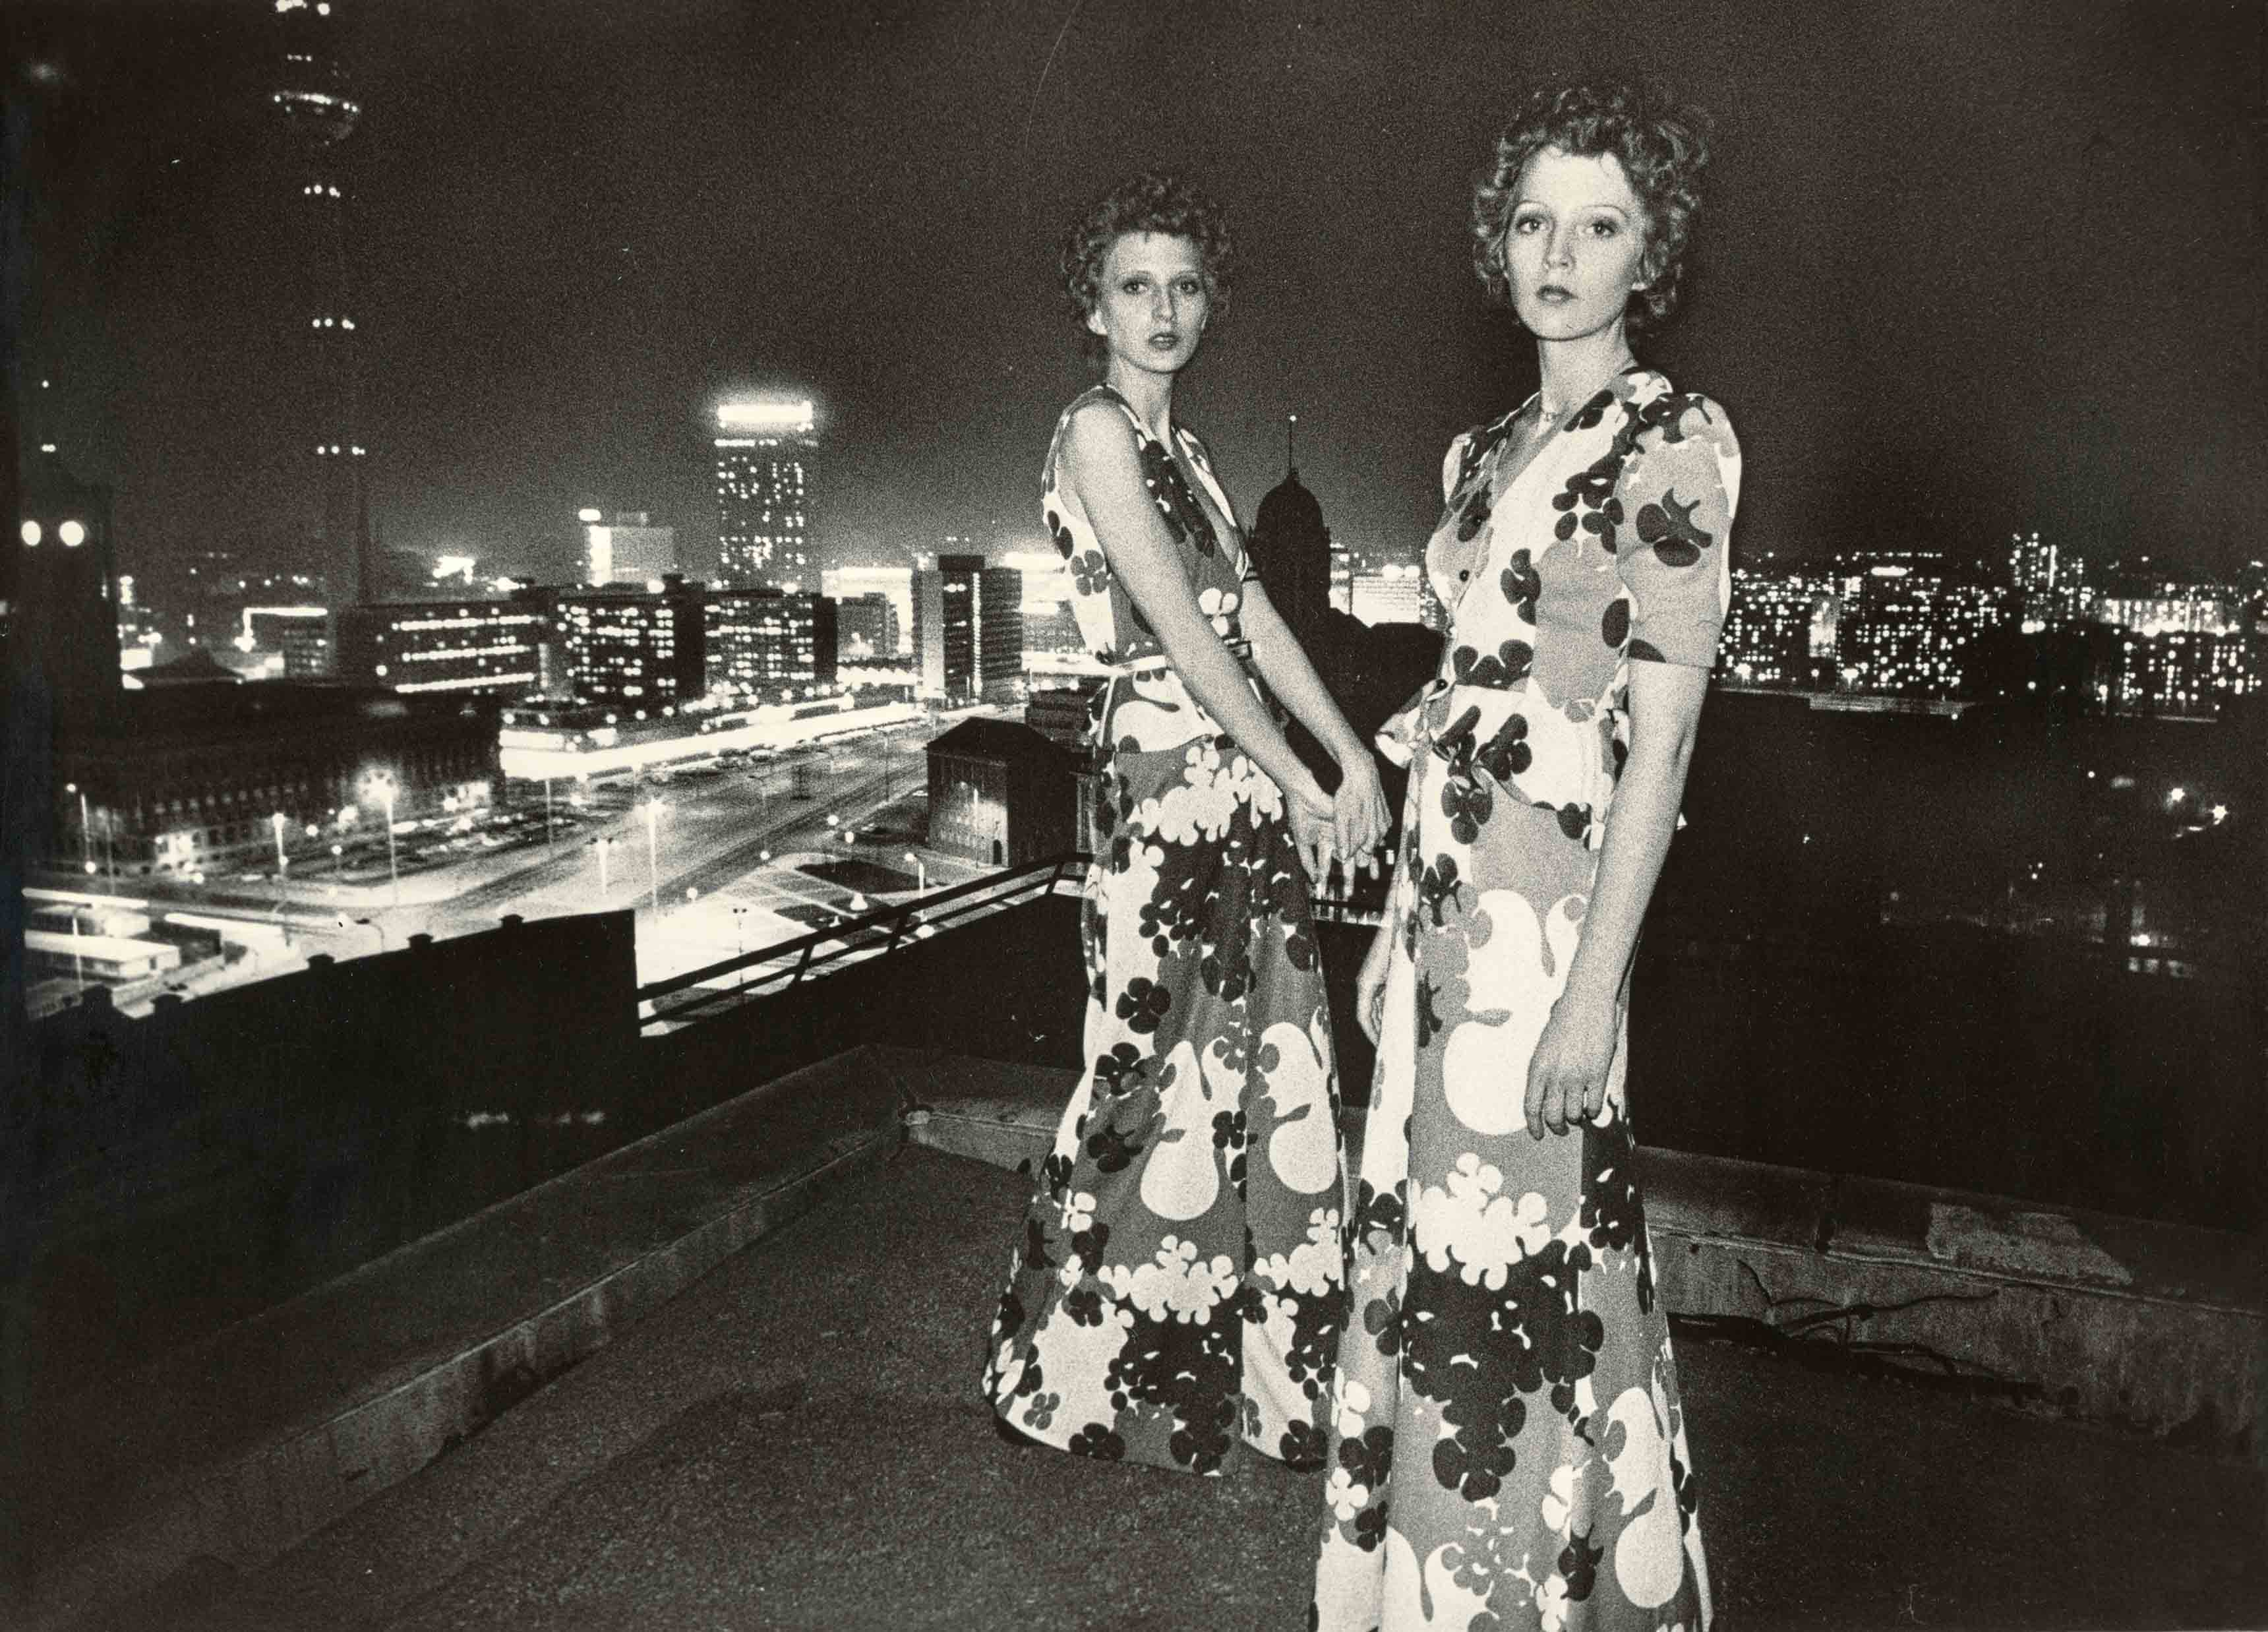 Evening dresses | vintage print | 11,4 x 15,4 in | models: Fashion Institute of the GDR | 'Sibylle', issue 4, 1974 Galerie Berinson, Berlin